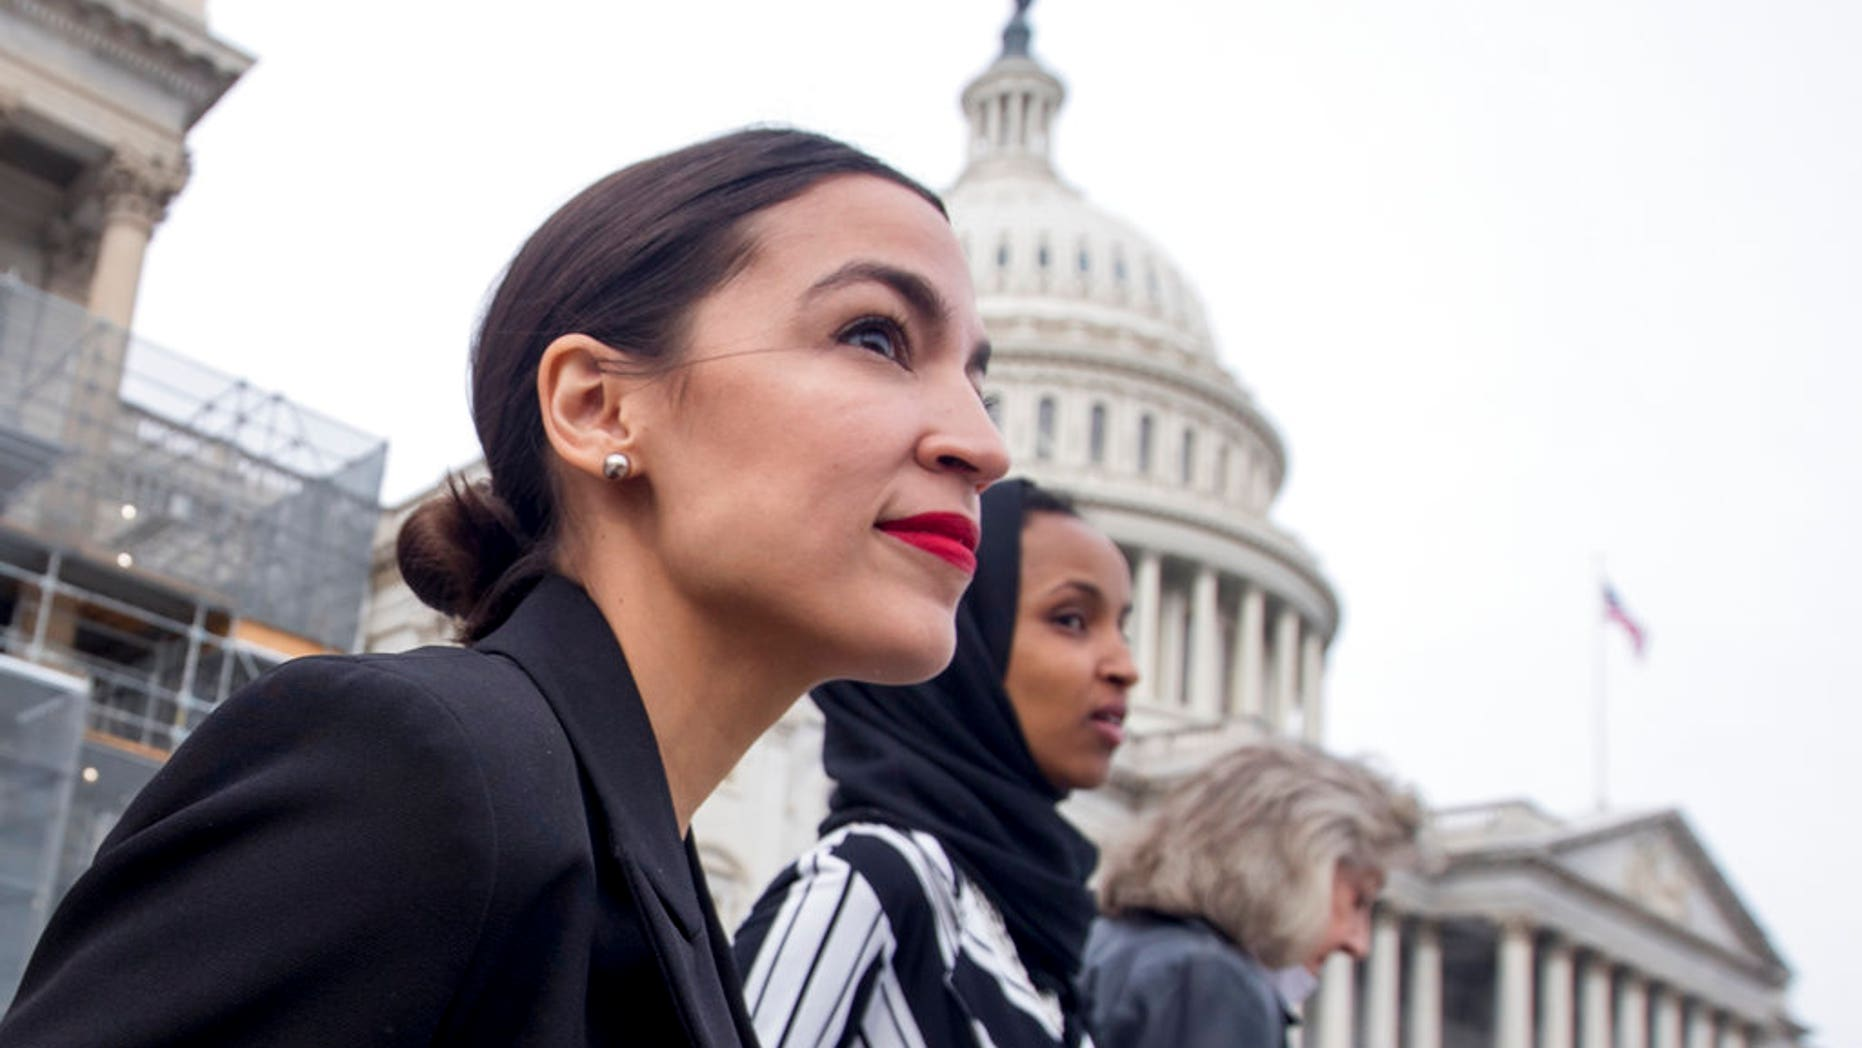 Ocasio-Cortez Campaign Fined for Shorting Staffers on Worker's Comp Coverage